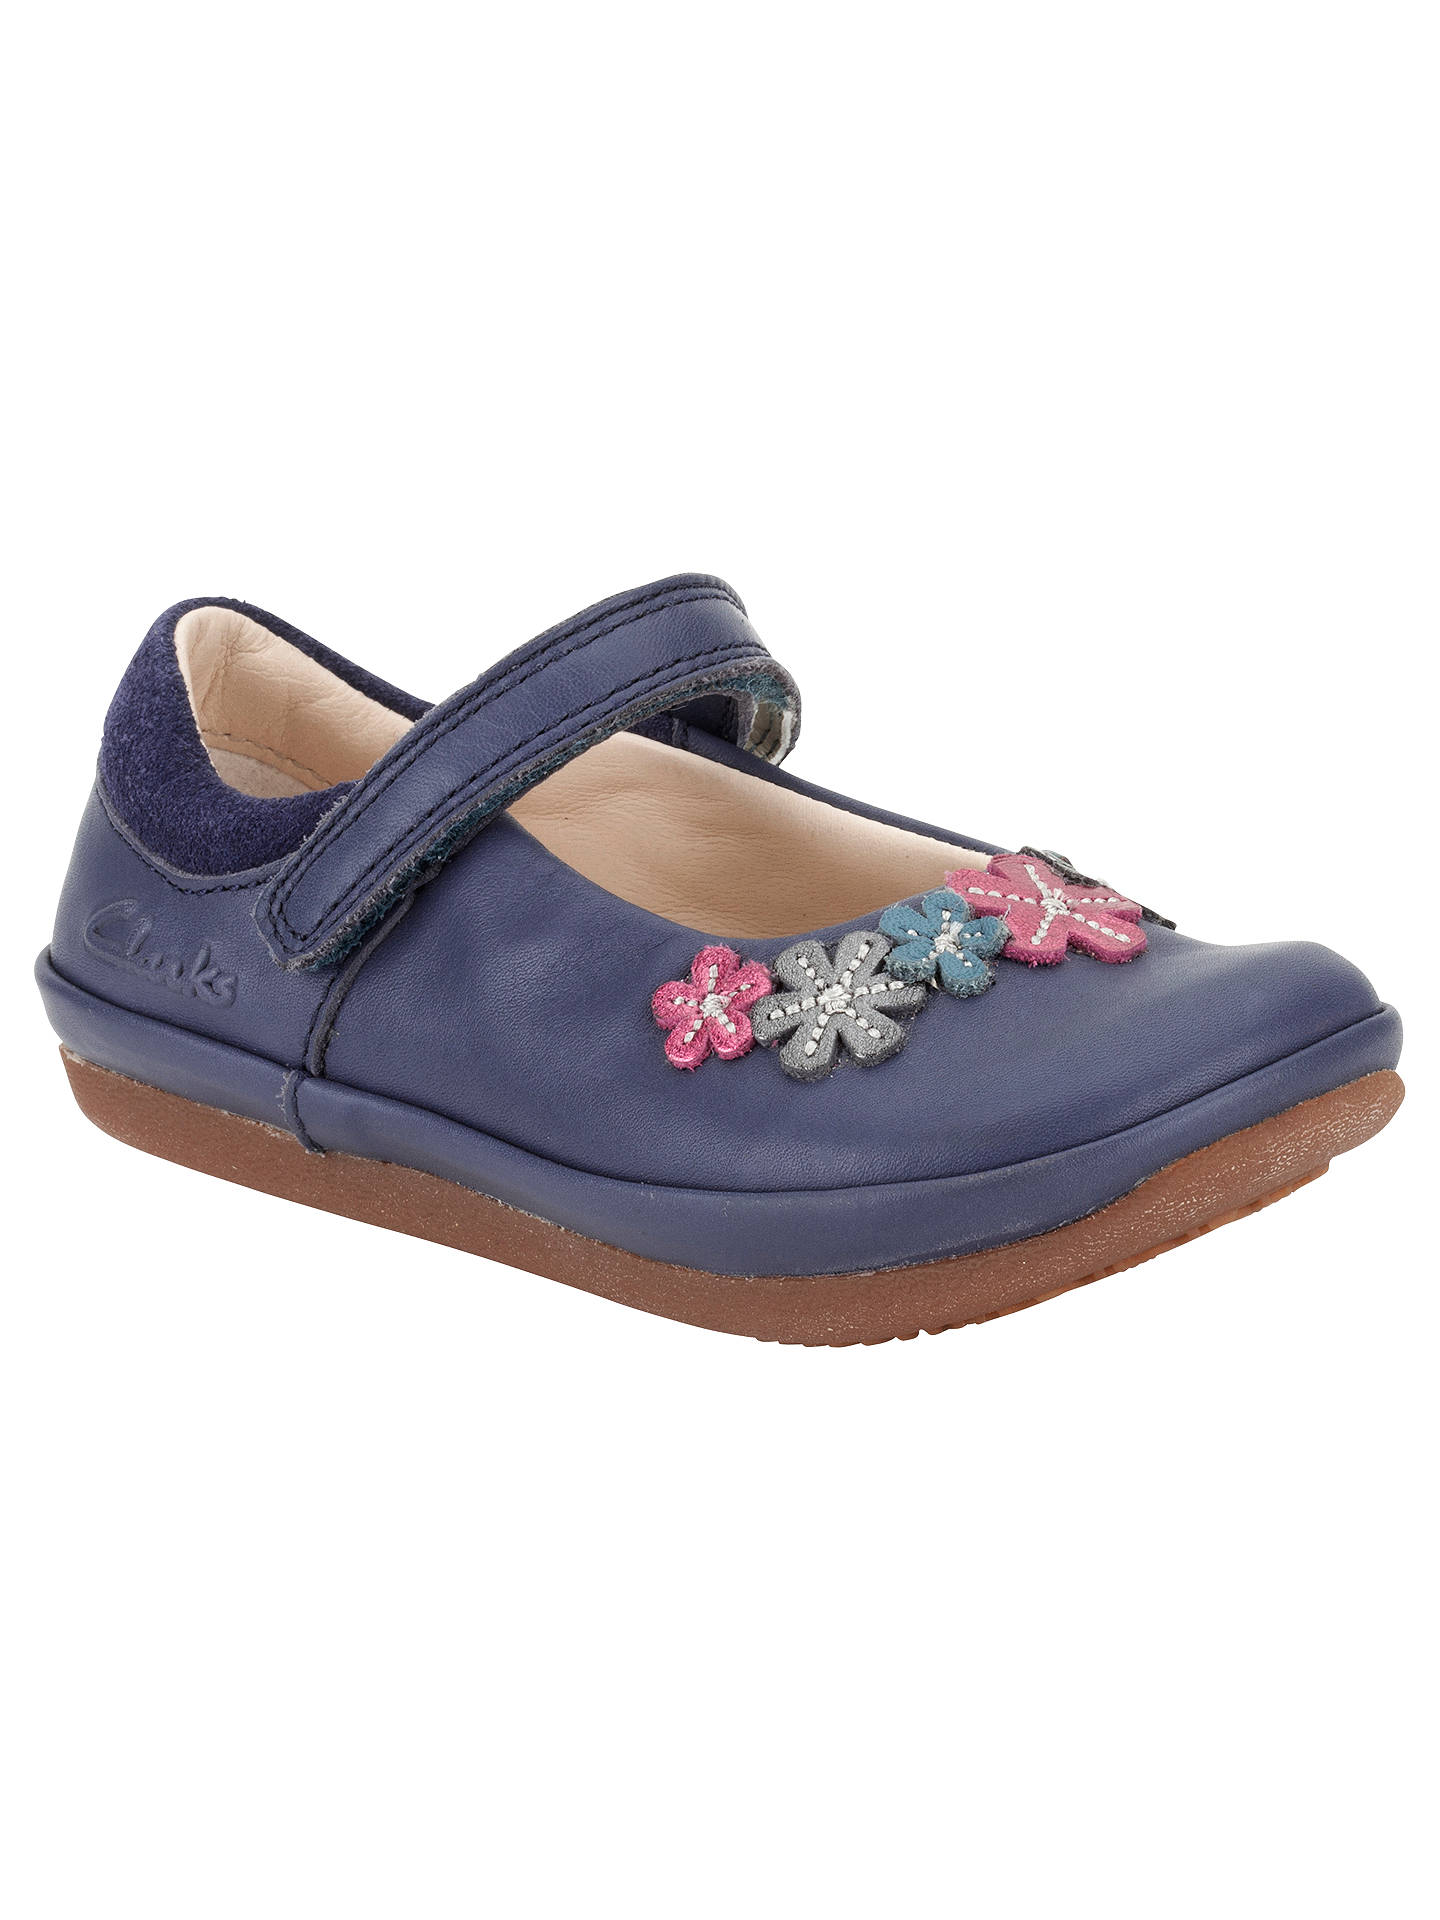 Clarks Children's Elza Lily Leather Shoes, Dark Blue at ...